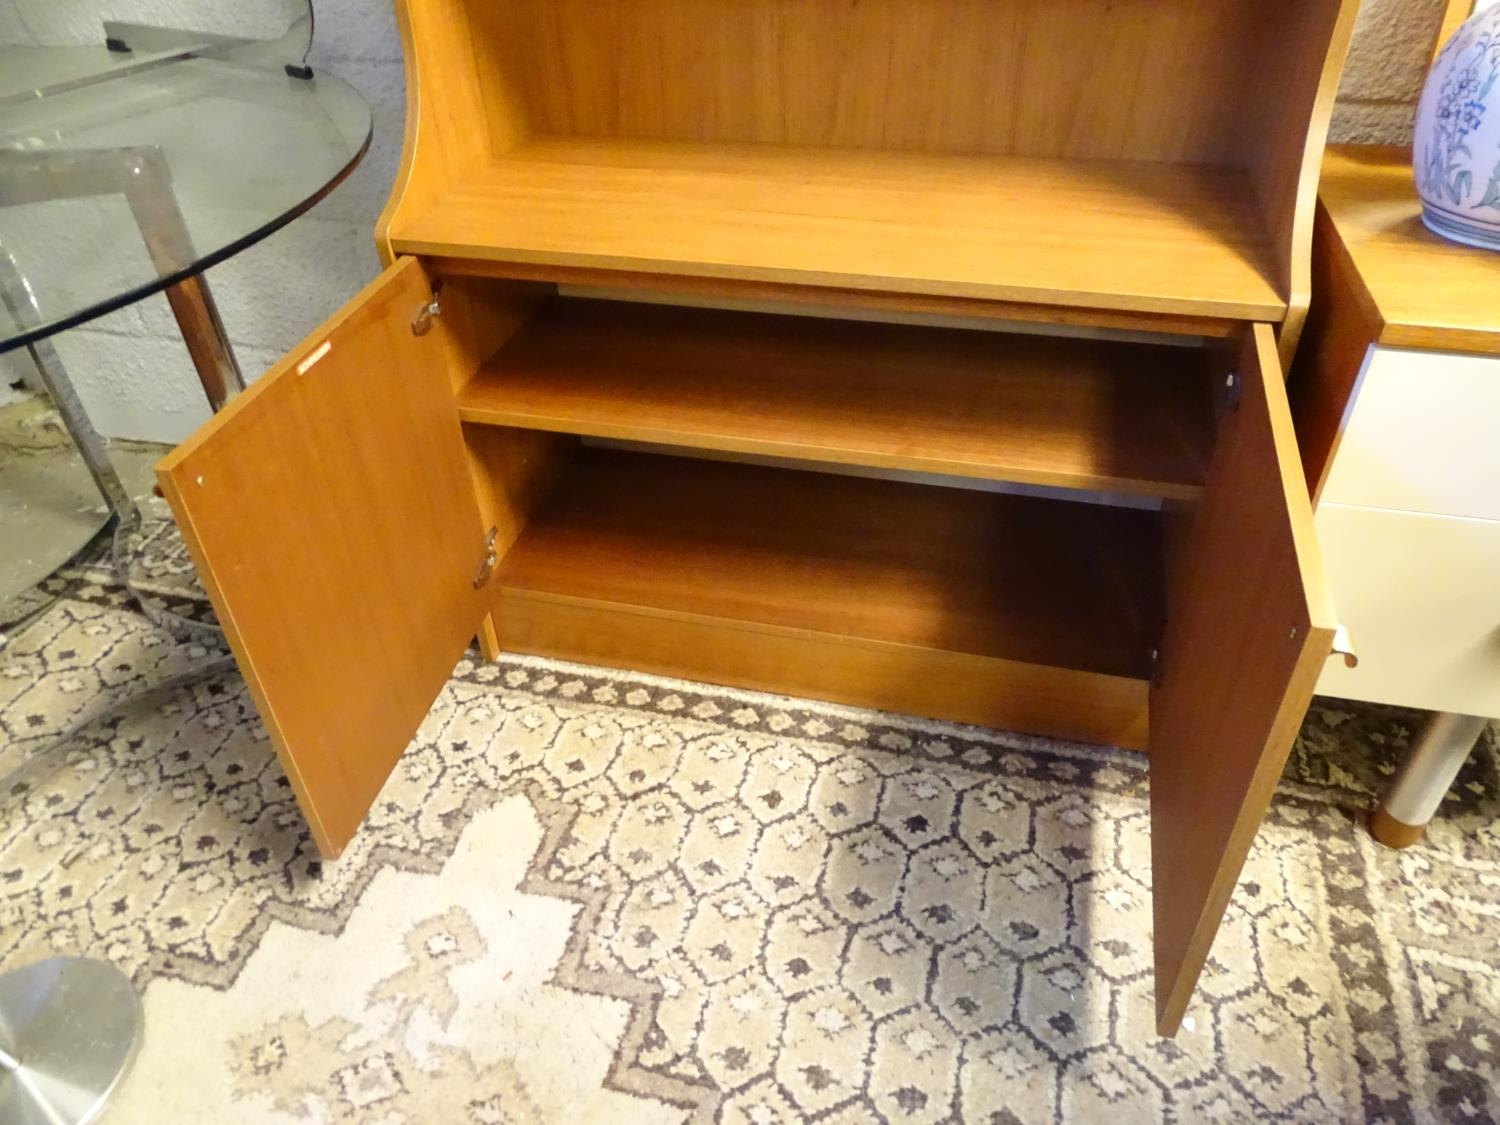 Vintage Retro, Mid Century: a Schreiber dresser bookcase, in teak finish with three shelves and - Image 7 of 7